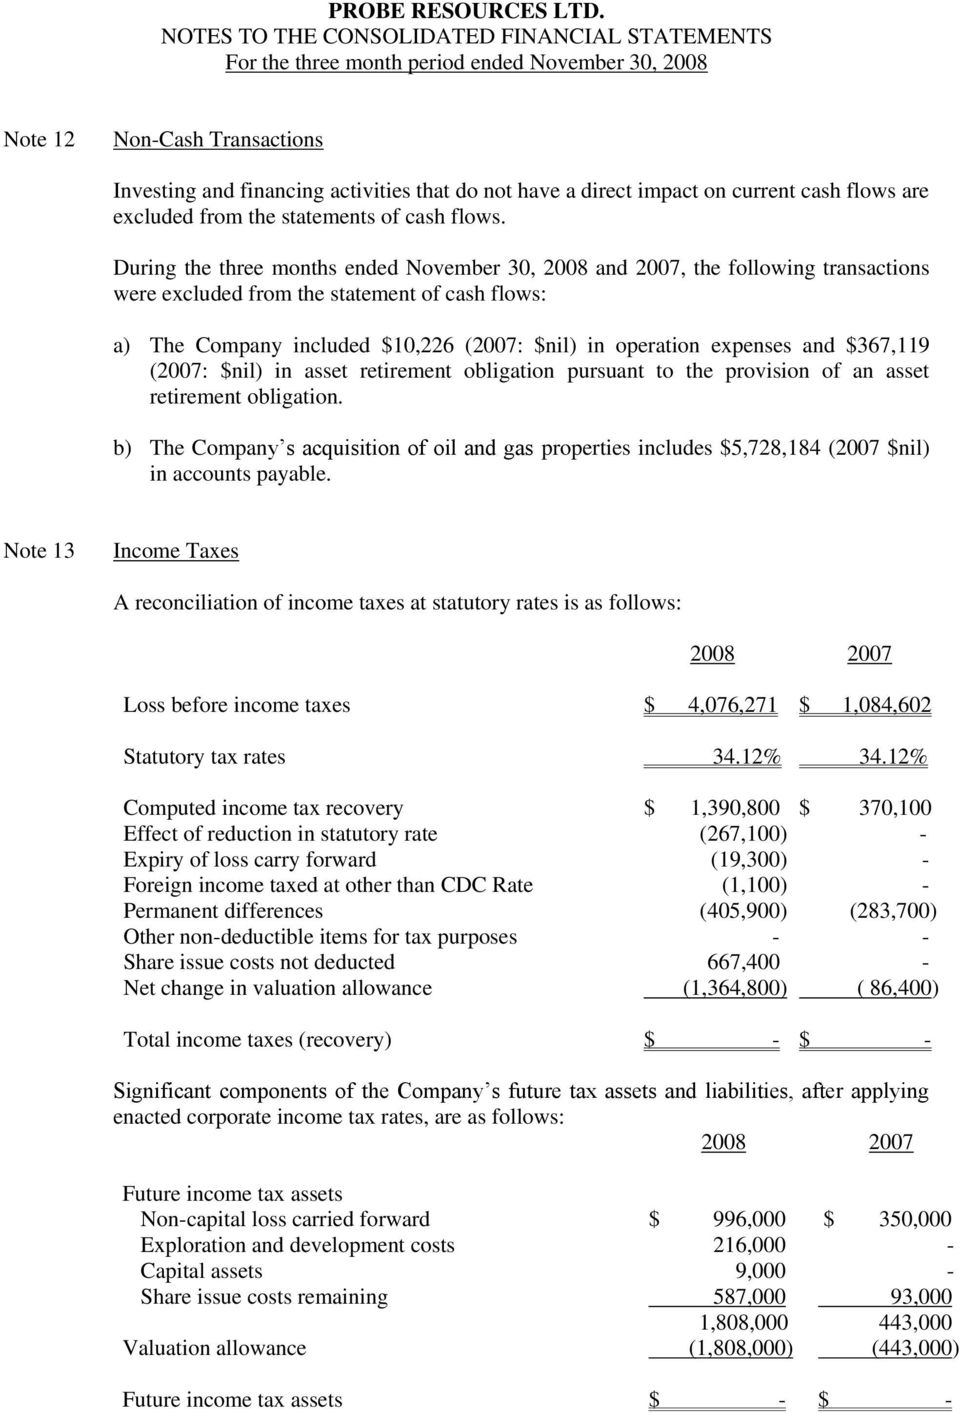 and $367,119 (2007: $nil) in asset retirement obligation pursuant to the provision of an asset retirement obligation.